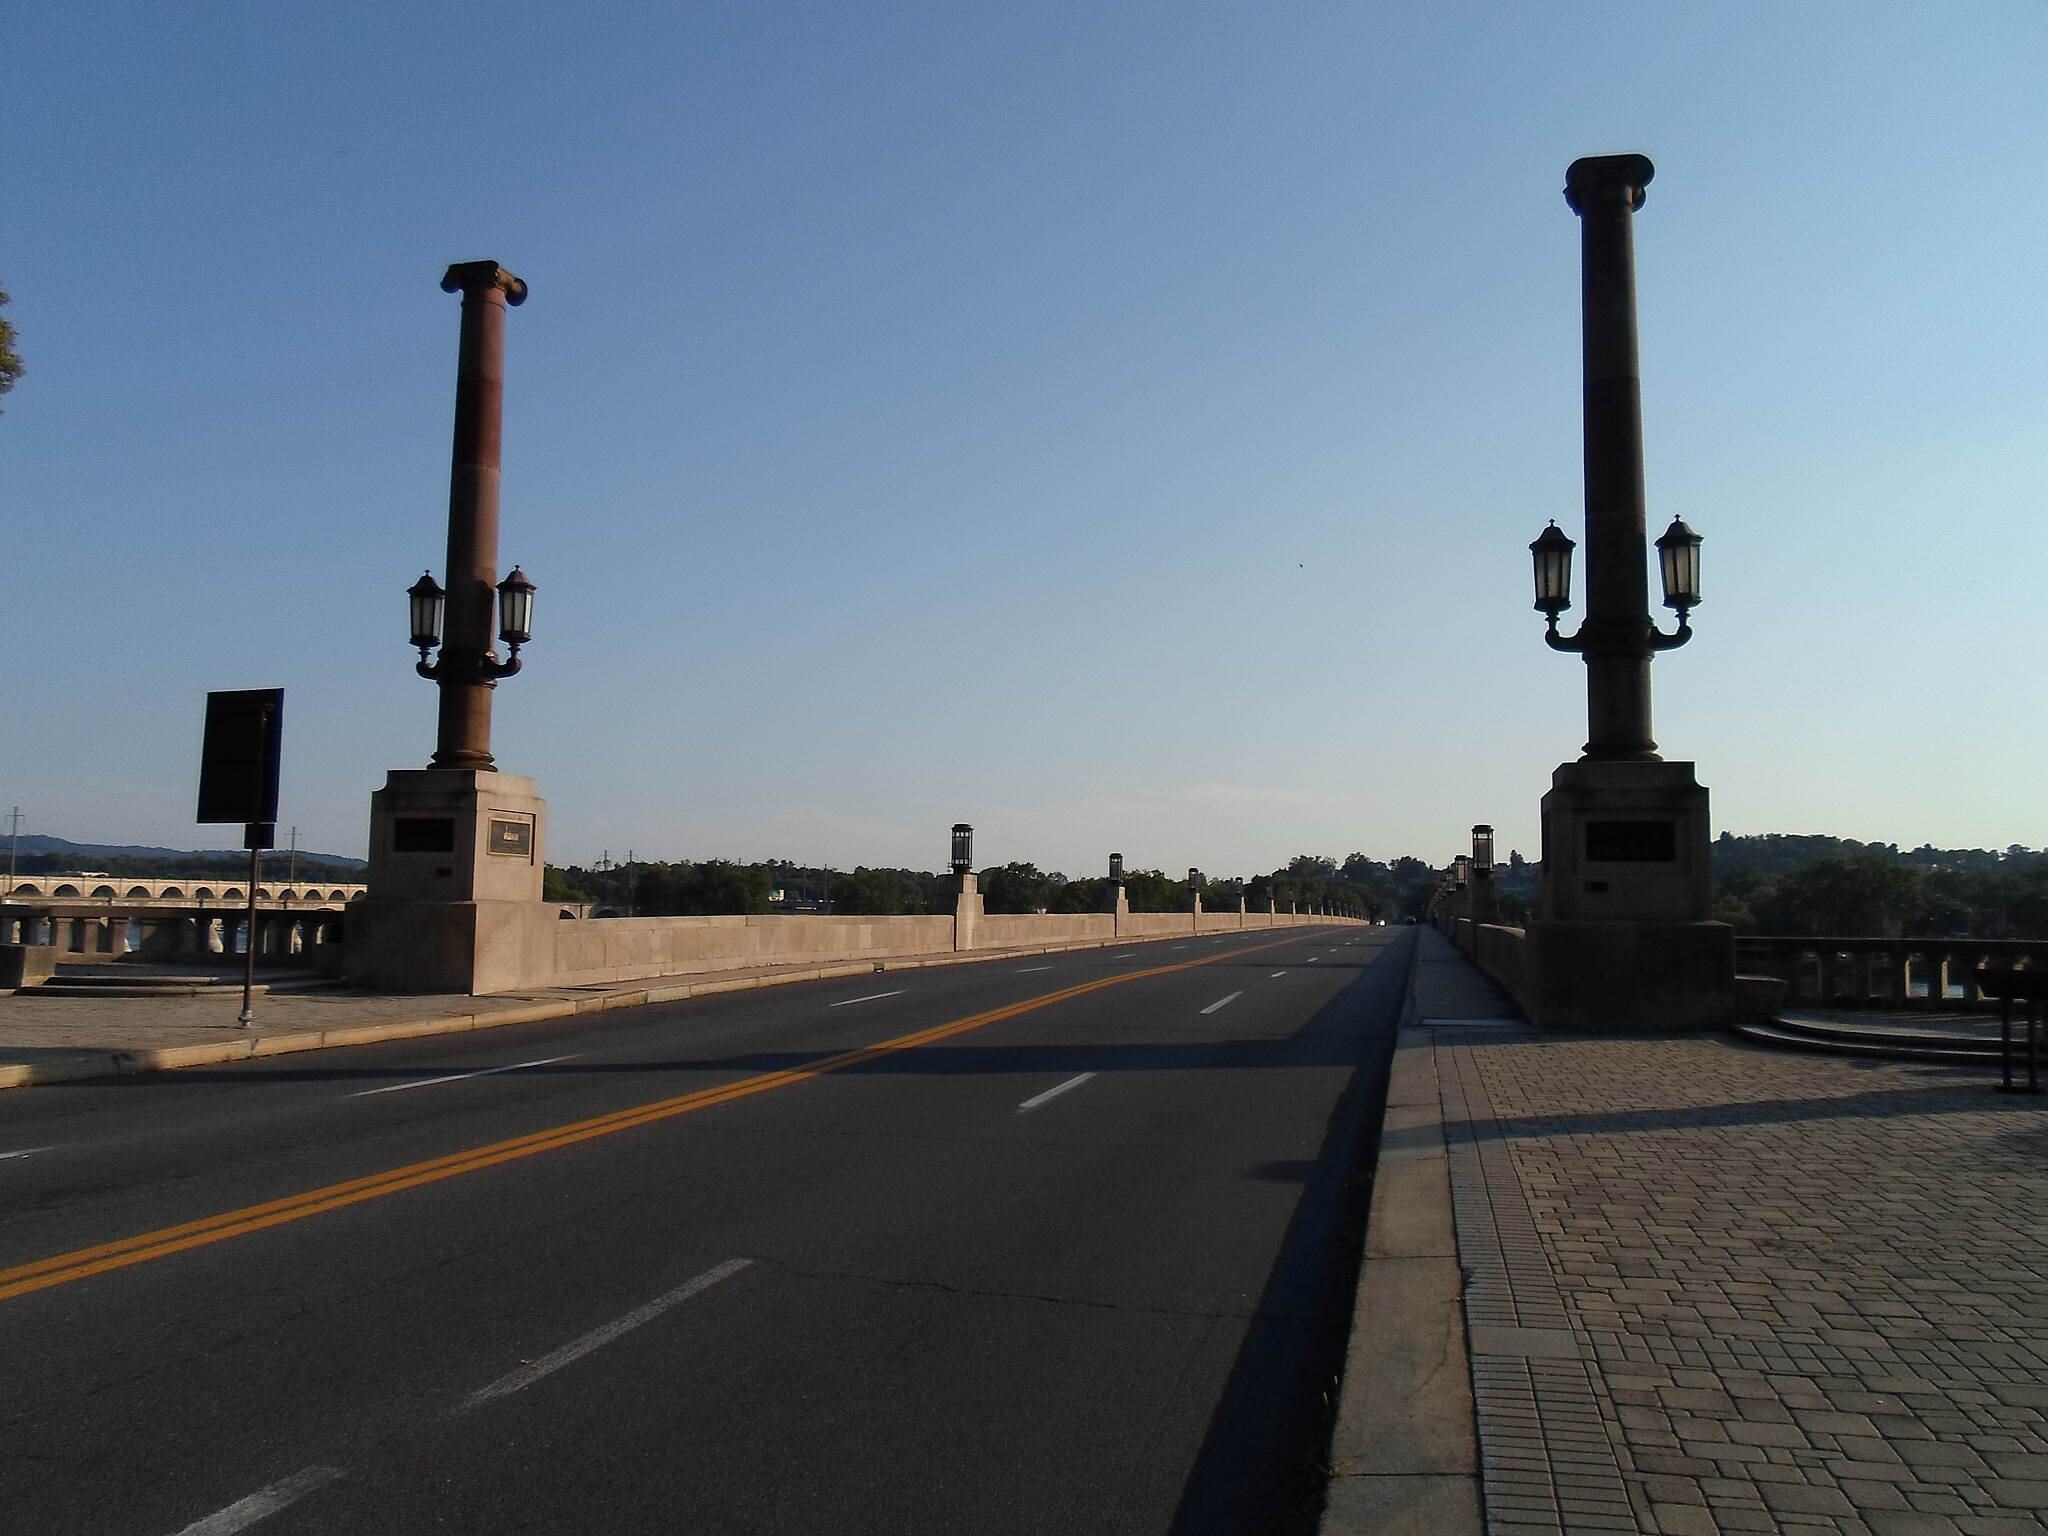 Capital Area Greenbelt Capital Area Greenbelt Neo-classical columns at the eastern approach to the Market Street Bridge, as seen from the greenbelt. Taken Aug. 2015.